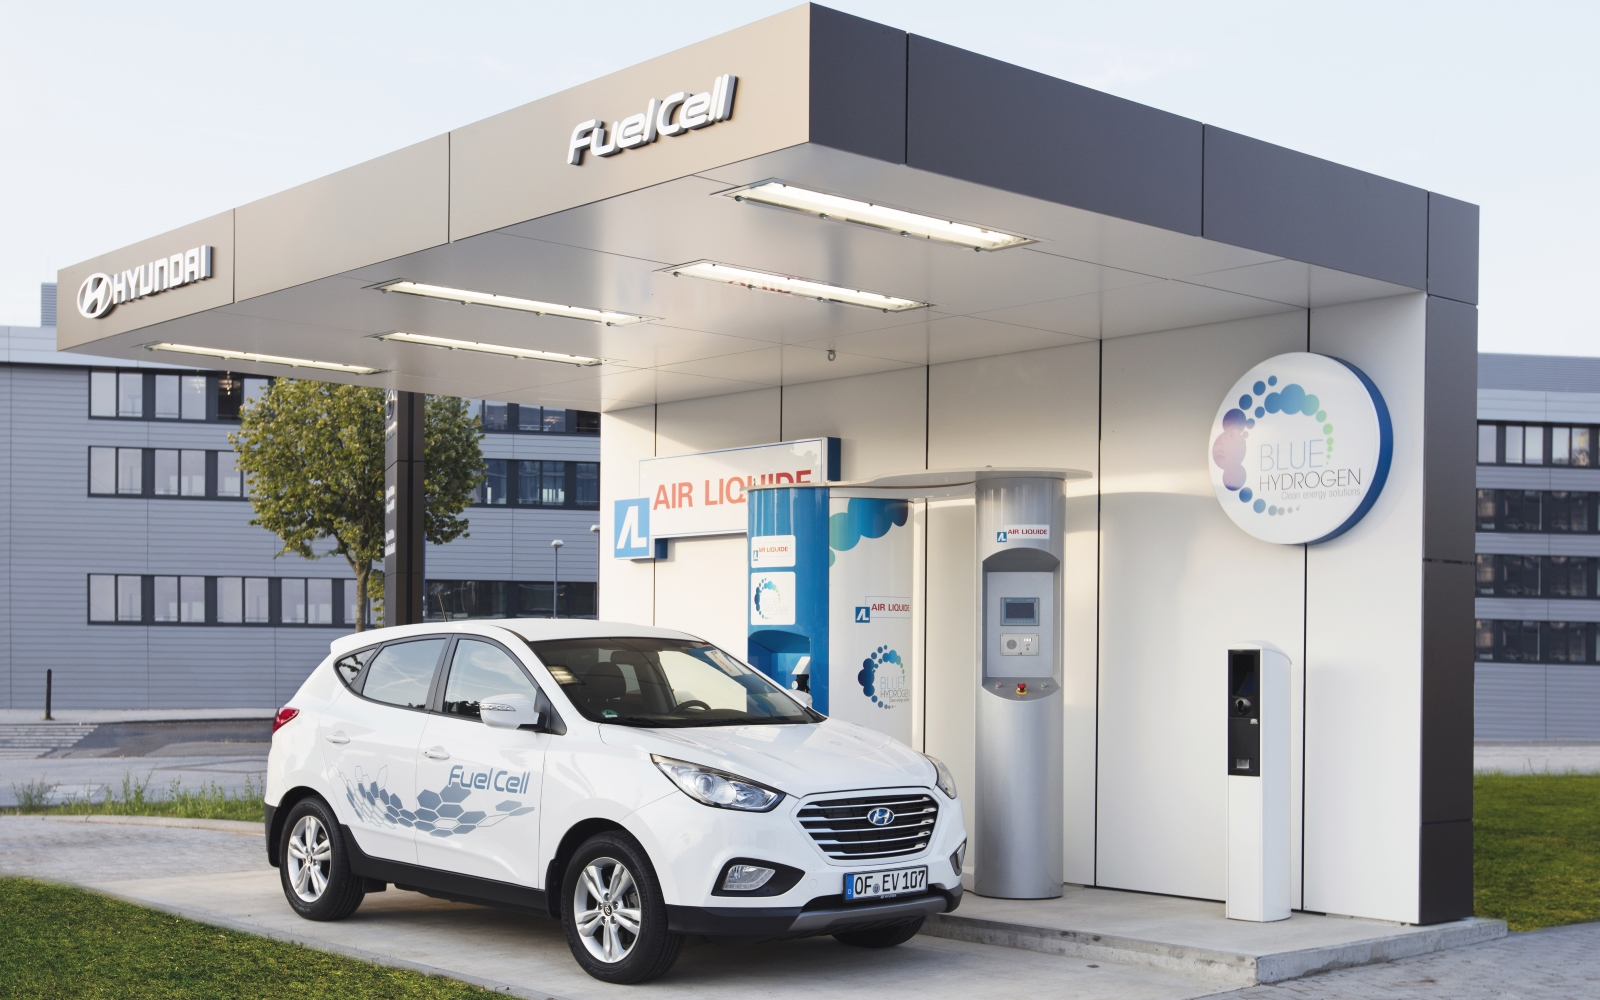 Automotive Majors to Invest $10 Billion in Hydrogen Fuel-Cell Technology